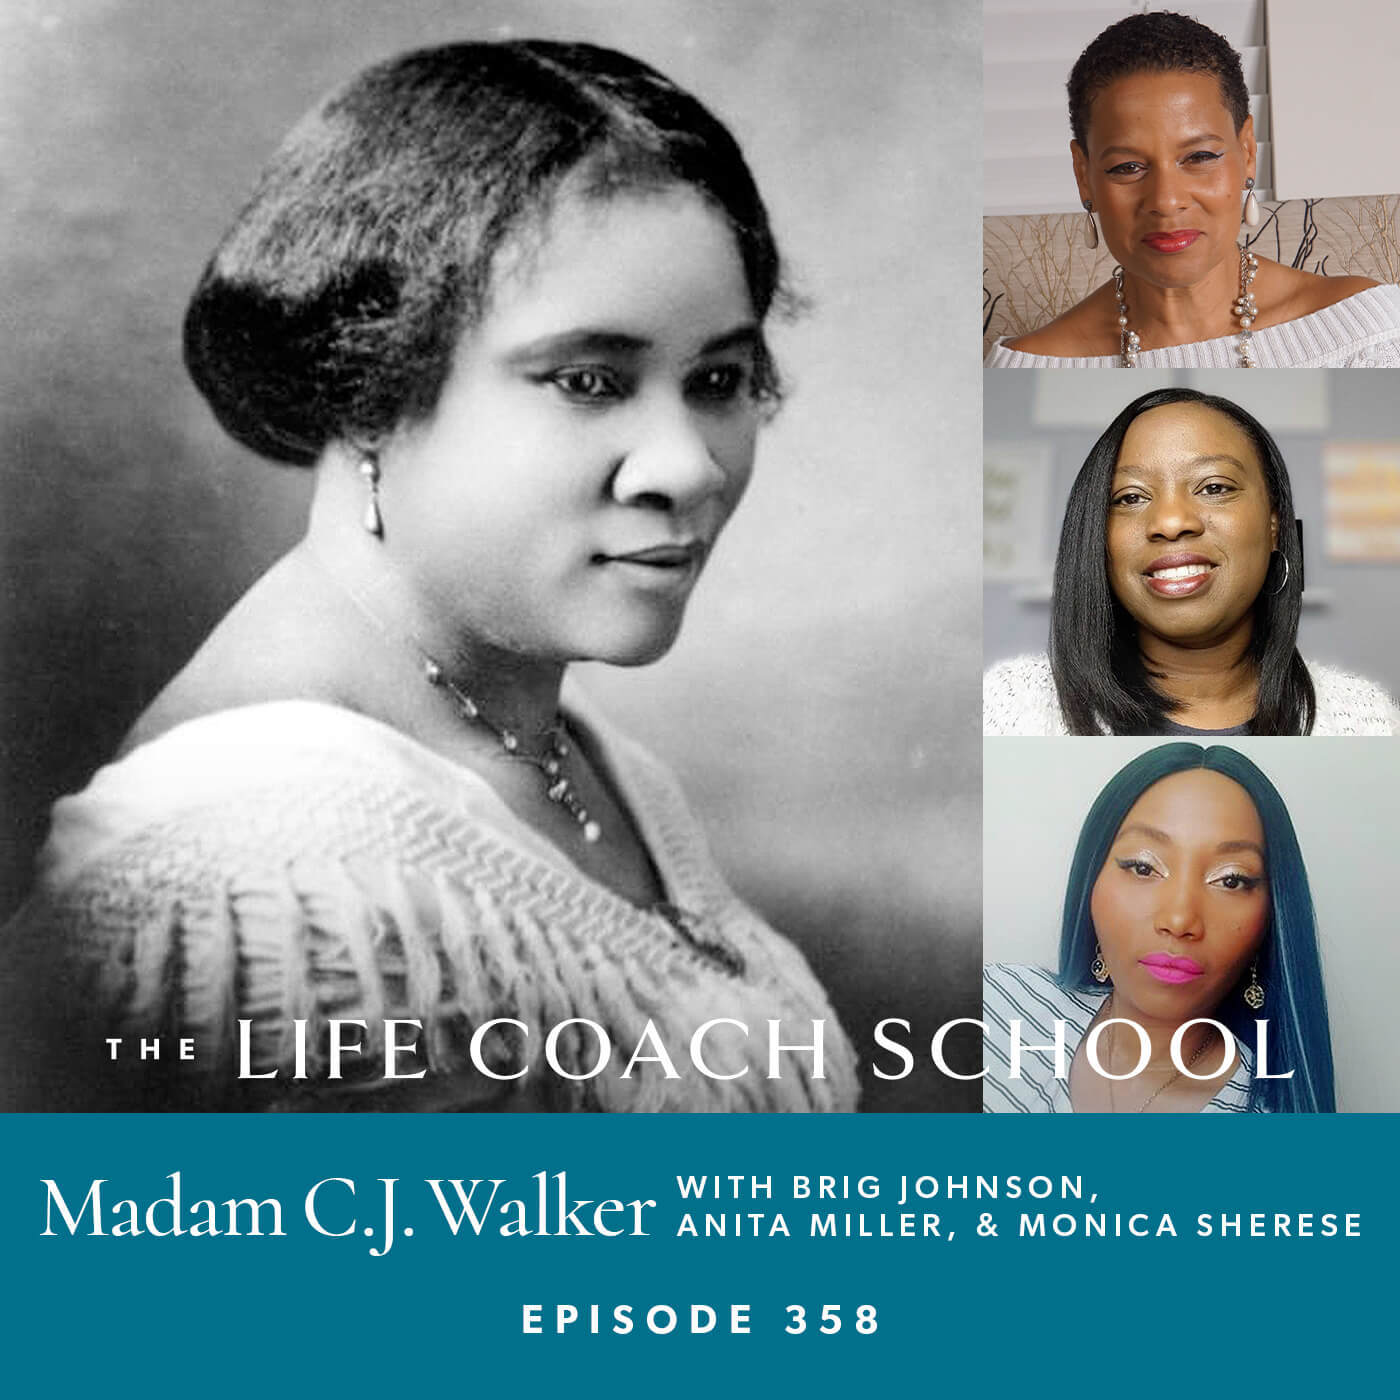 Ep #358: Madam C.J. Walker with Brig Johnson, Anita Miller, and Monica Sherese